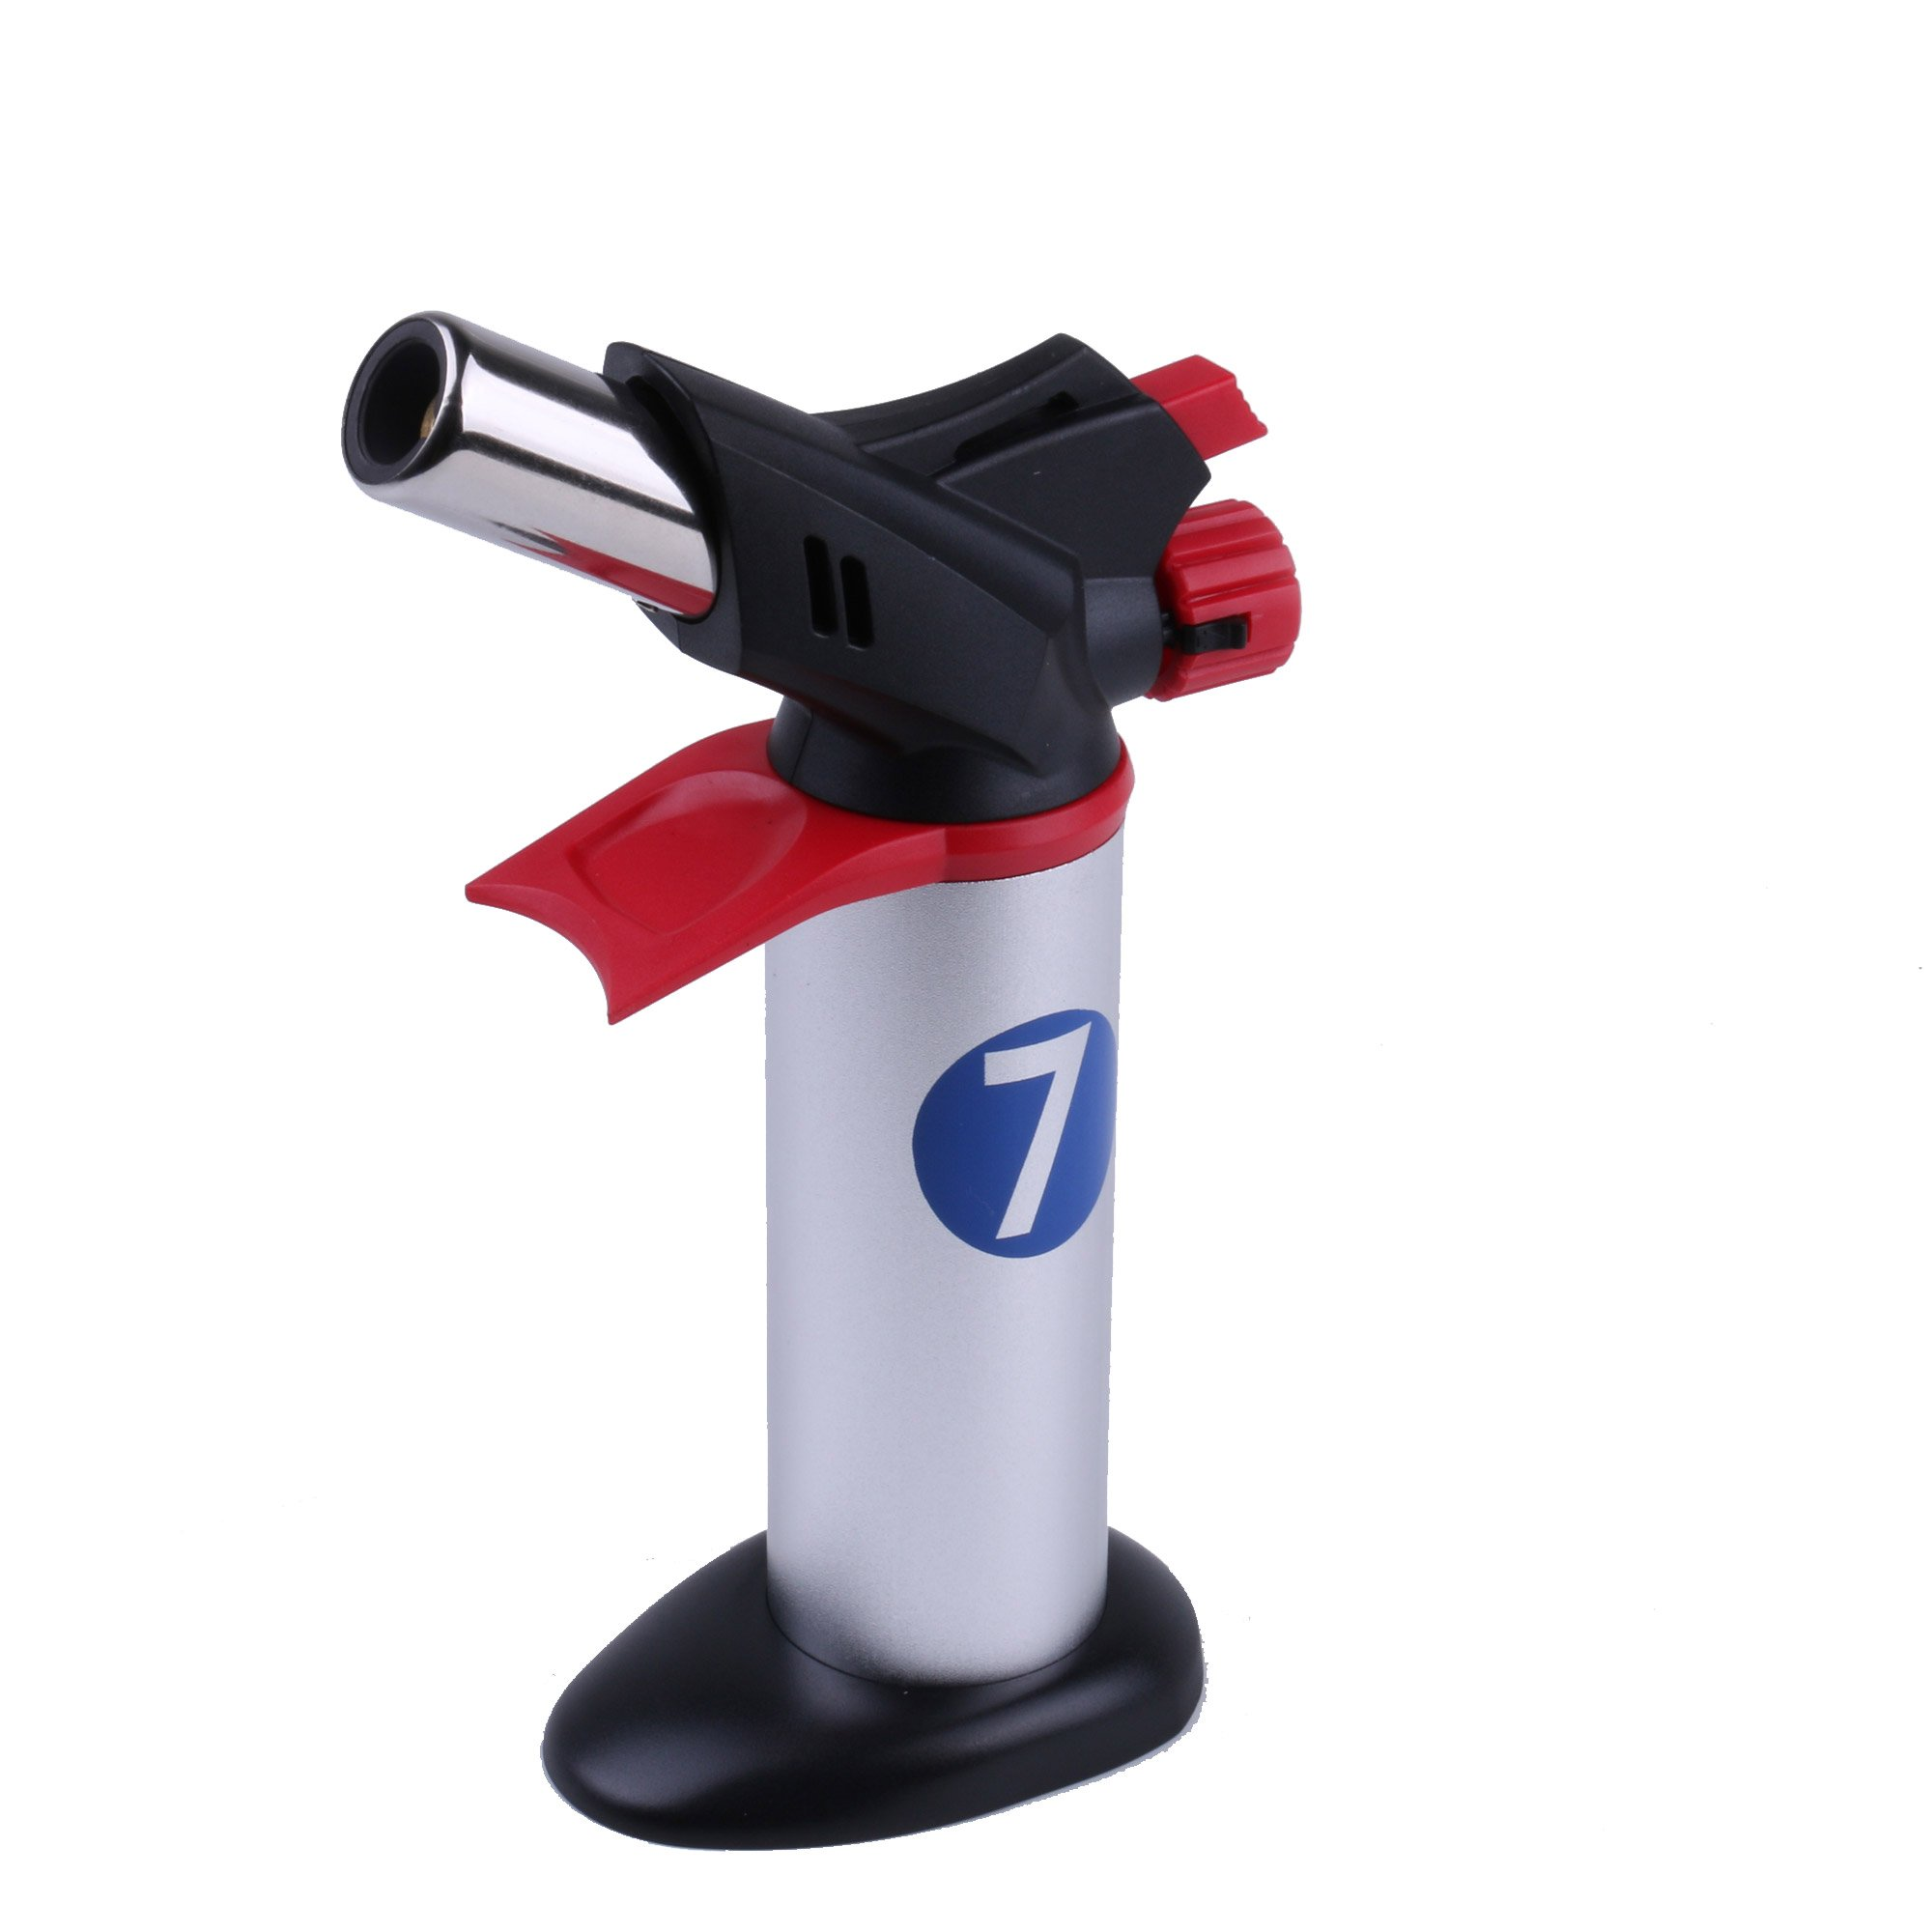 Professional Cooking Torch - Butane Culinary Torch for Creme Brulee and Searing - Adjustable Flame Food Torch - Blow Torch